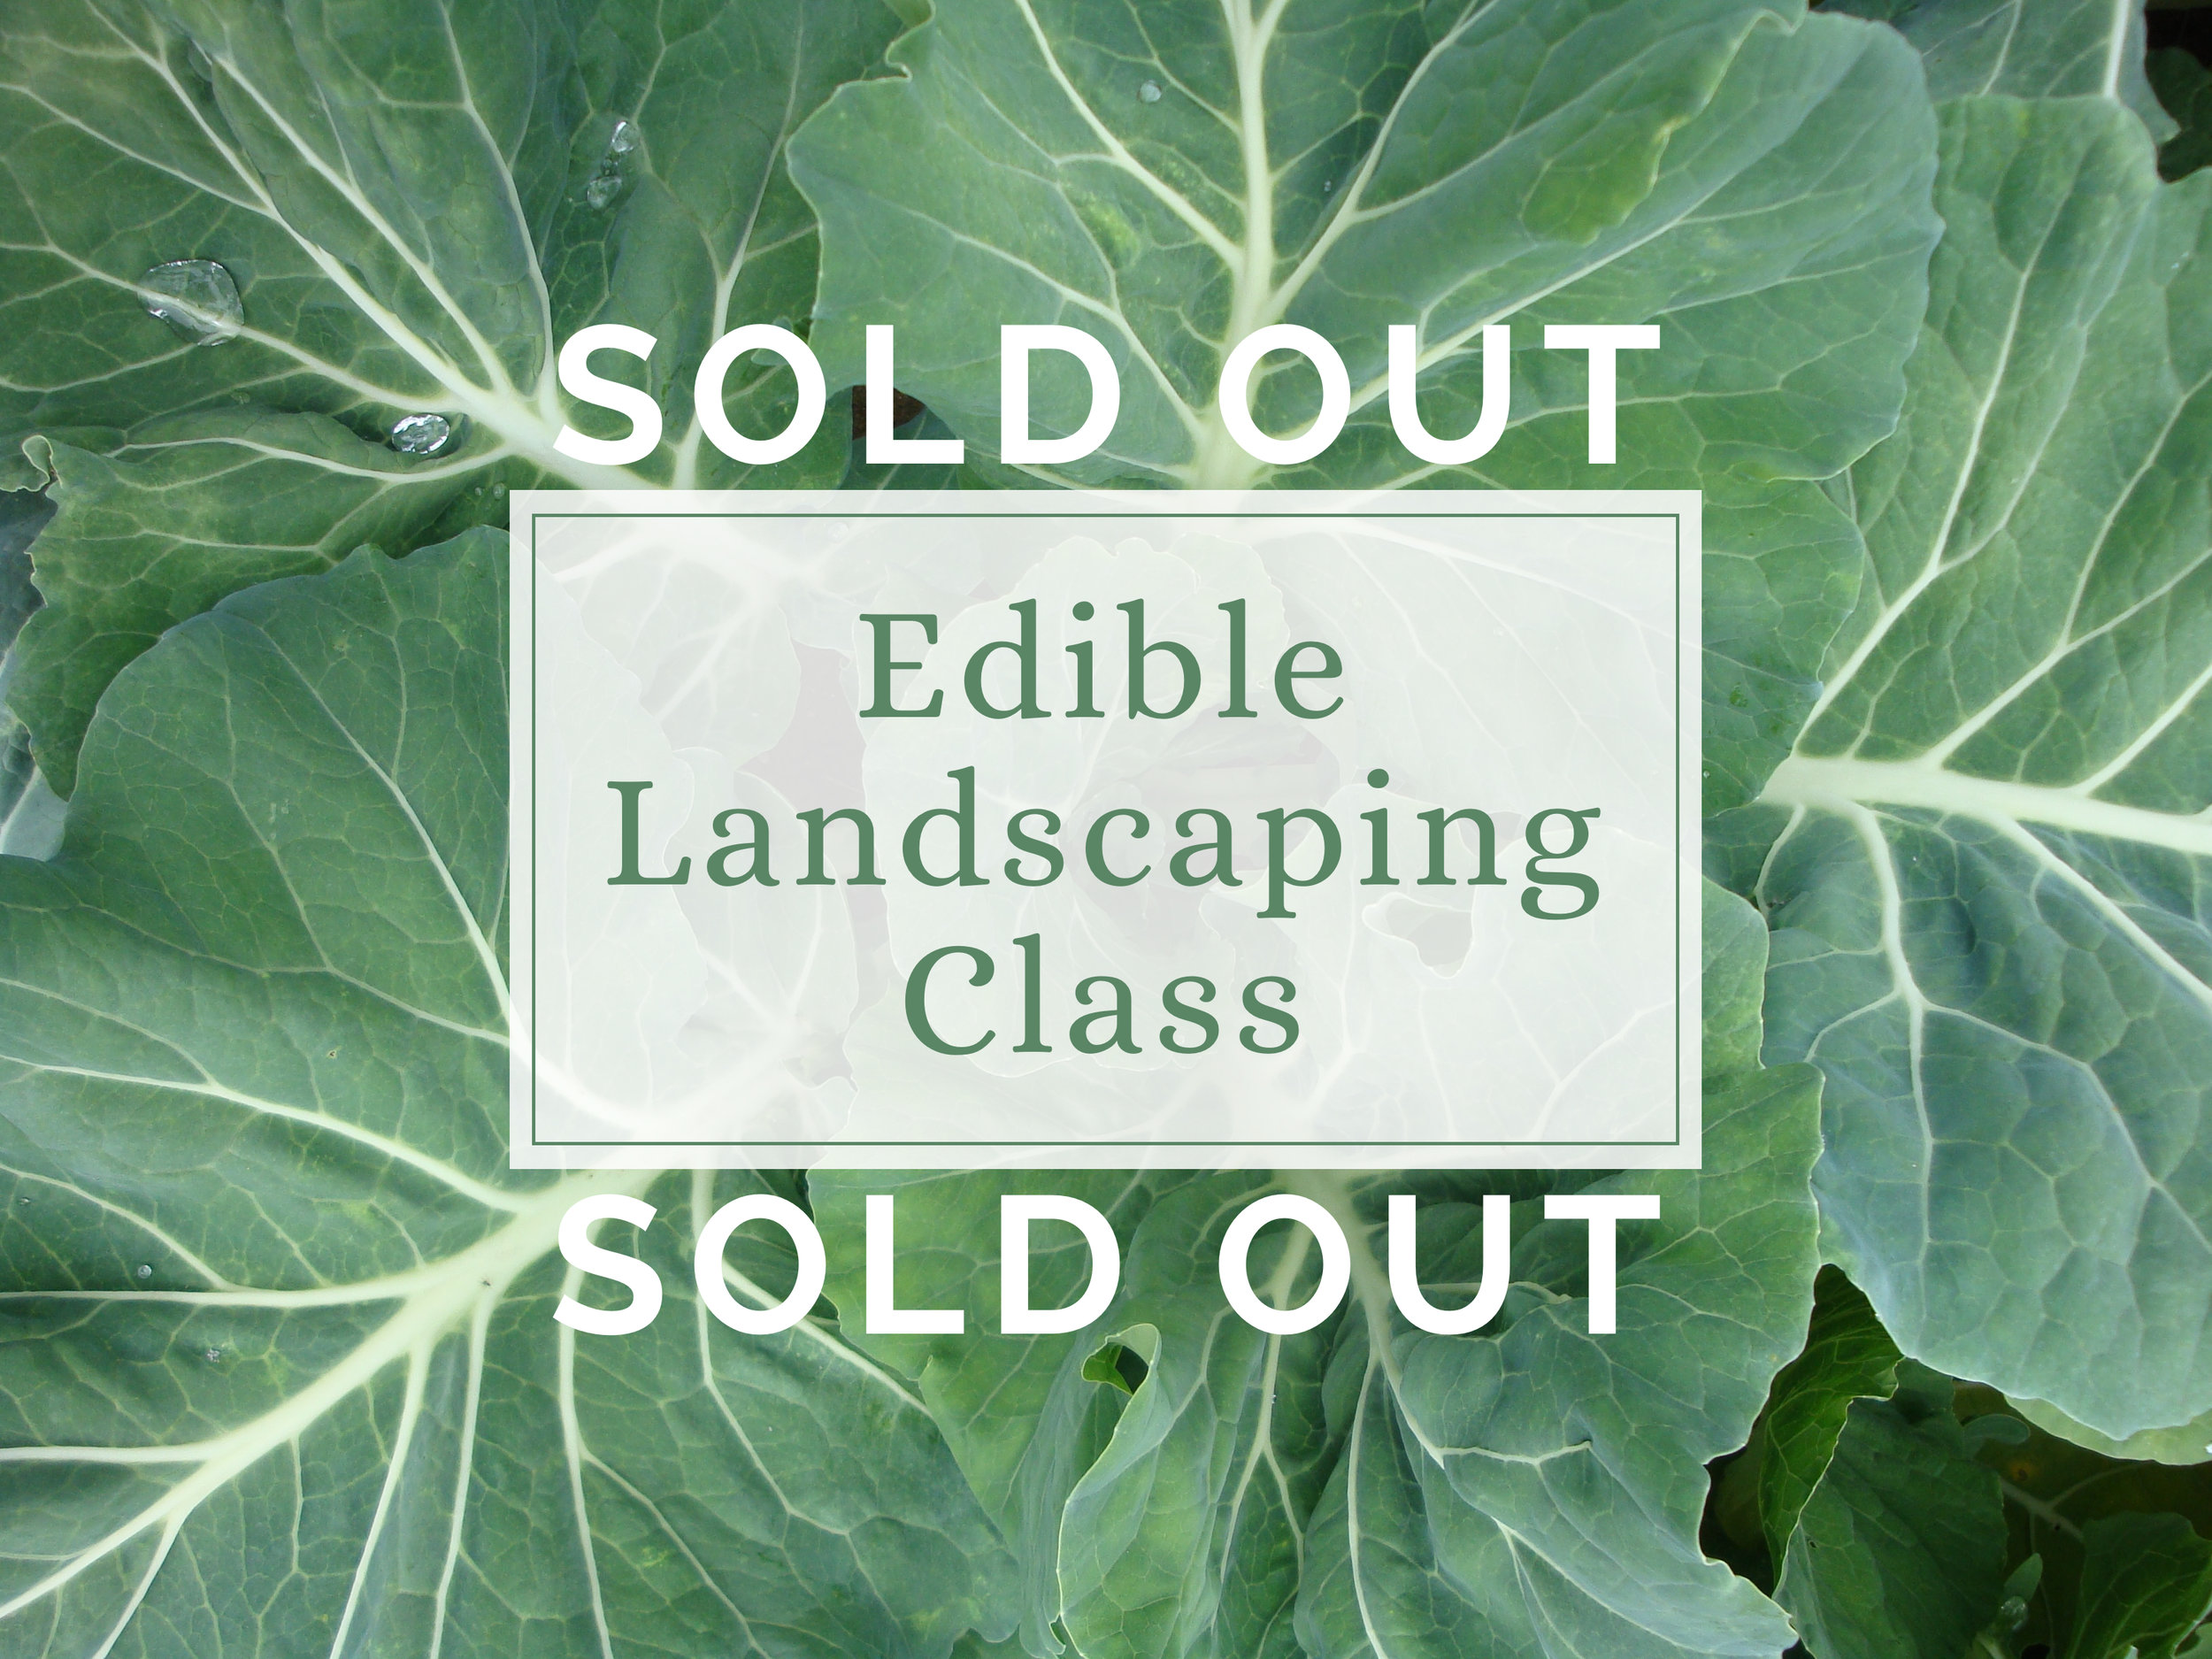 edible landscaping class sold out.jpg